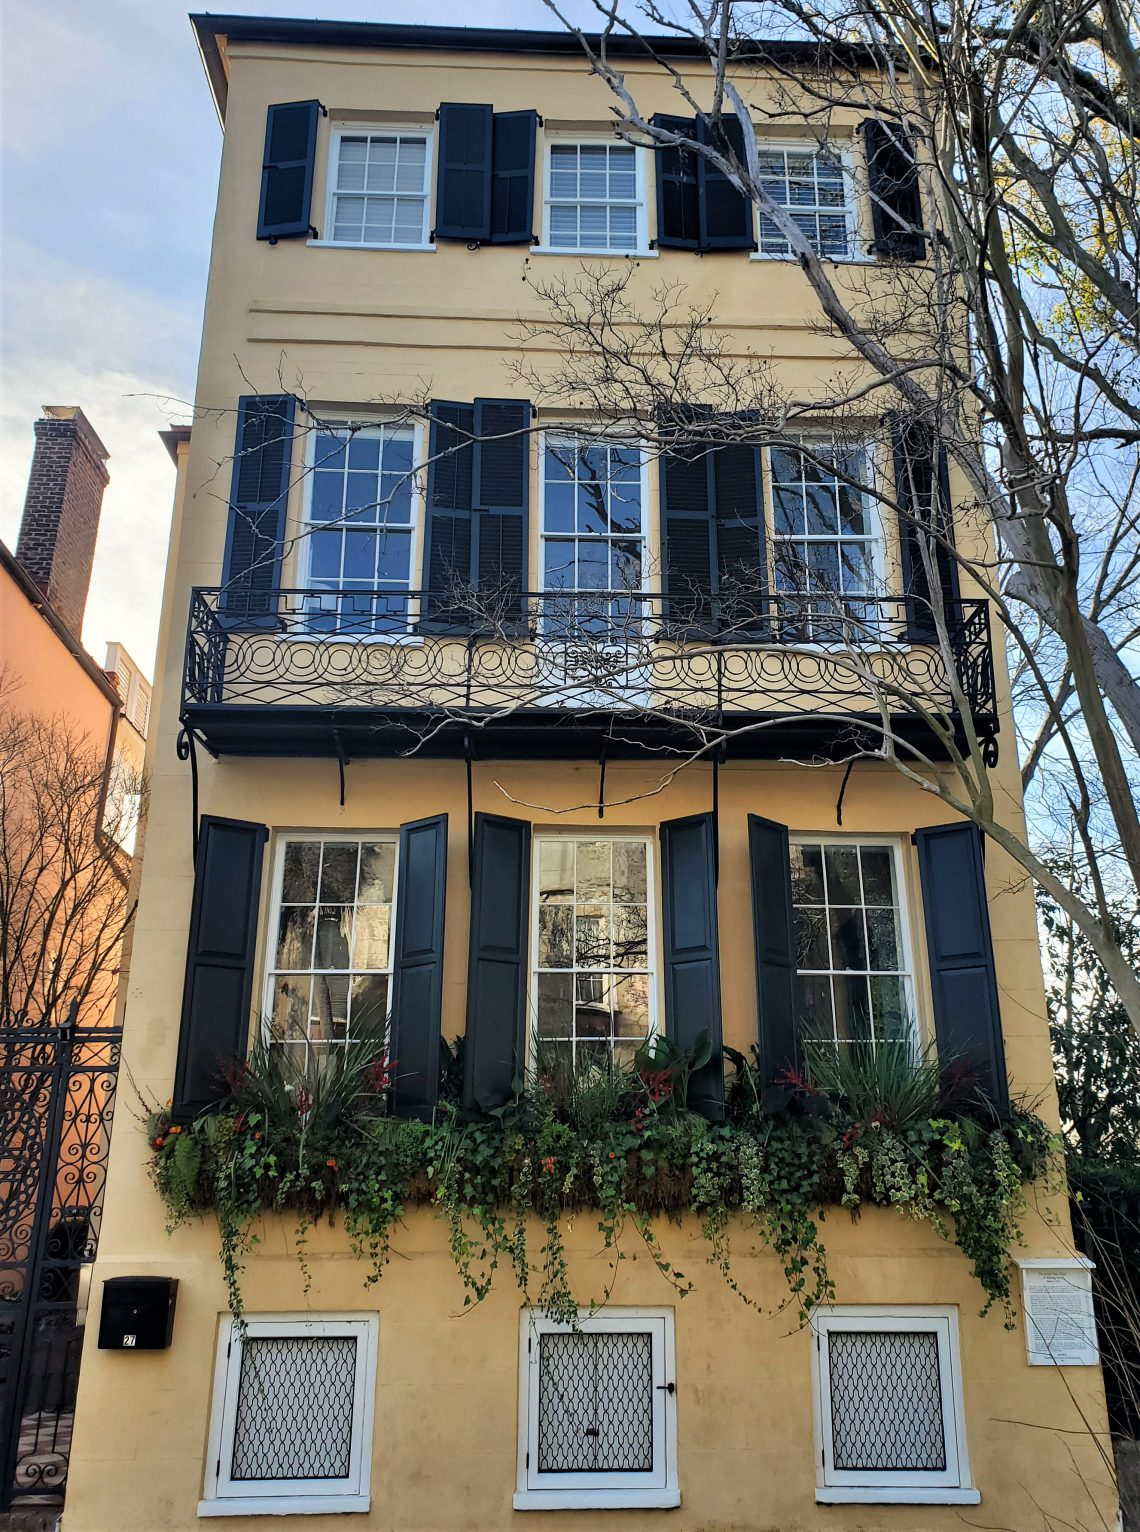 Built just after the American Revolution, this colorful house on Meeting Street is the youngest of the famed Three Sisters houses. Not only is it a beautiful house, it consistently has some of the most eye-catching window boxes in the city.